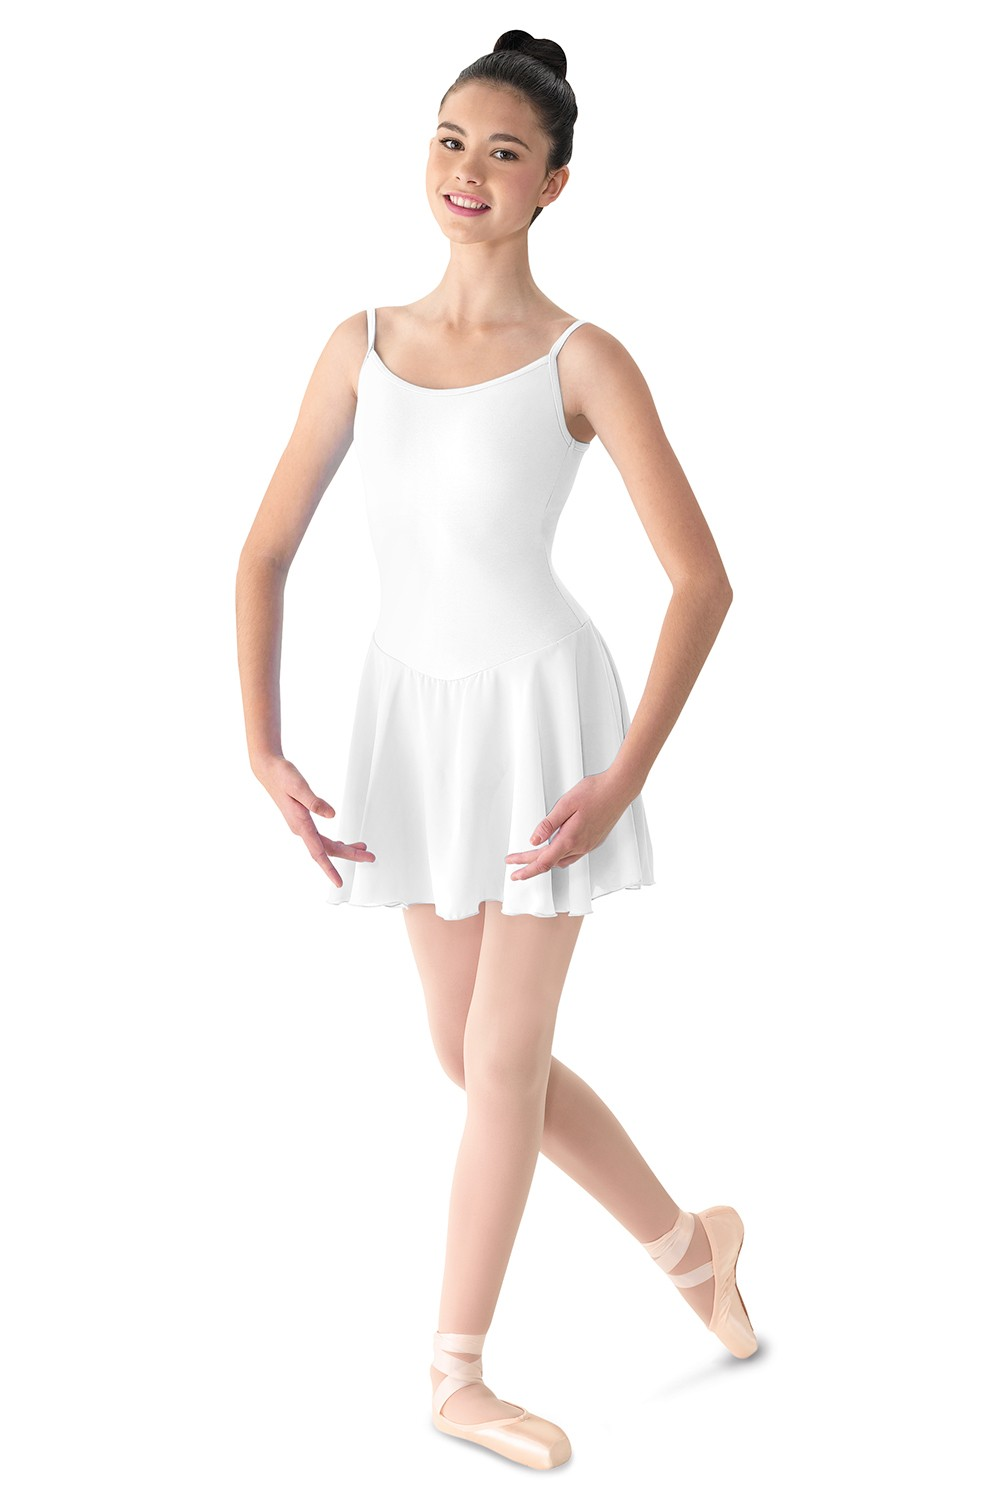 Camisole Dress W/skirt Women's Dance Leotards